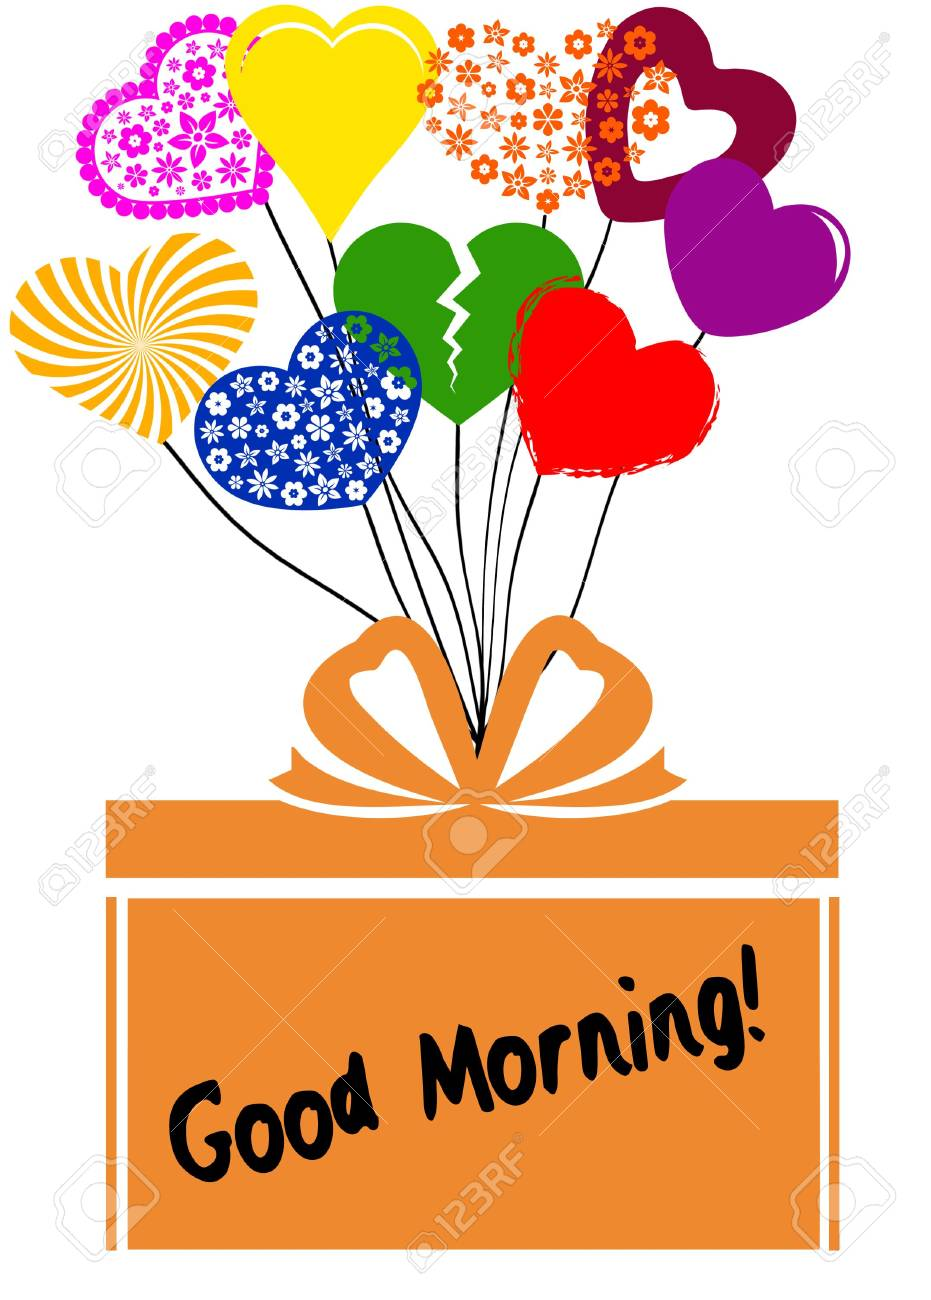 GOOD MORNING On Gift Box With Multicoloured Hearts. Illustration.. Stock  Photo, Picture And Royalty Free Image. Image 99785405.